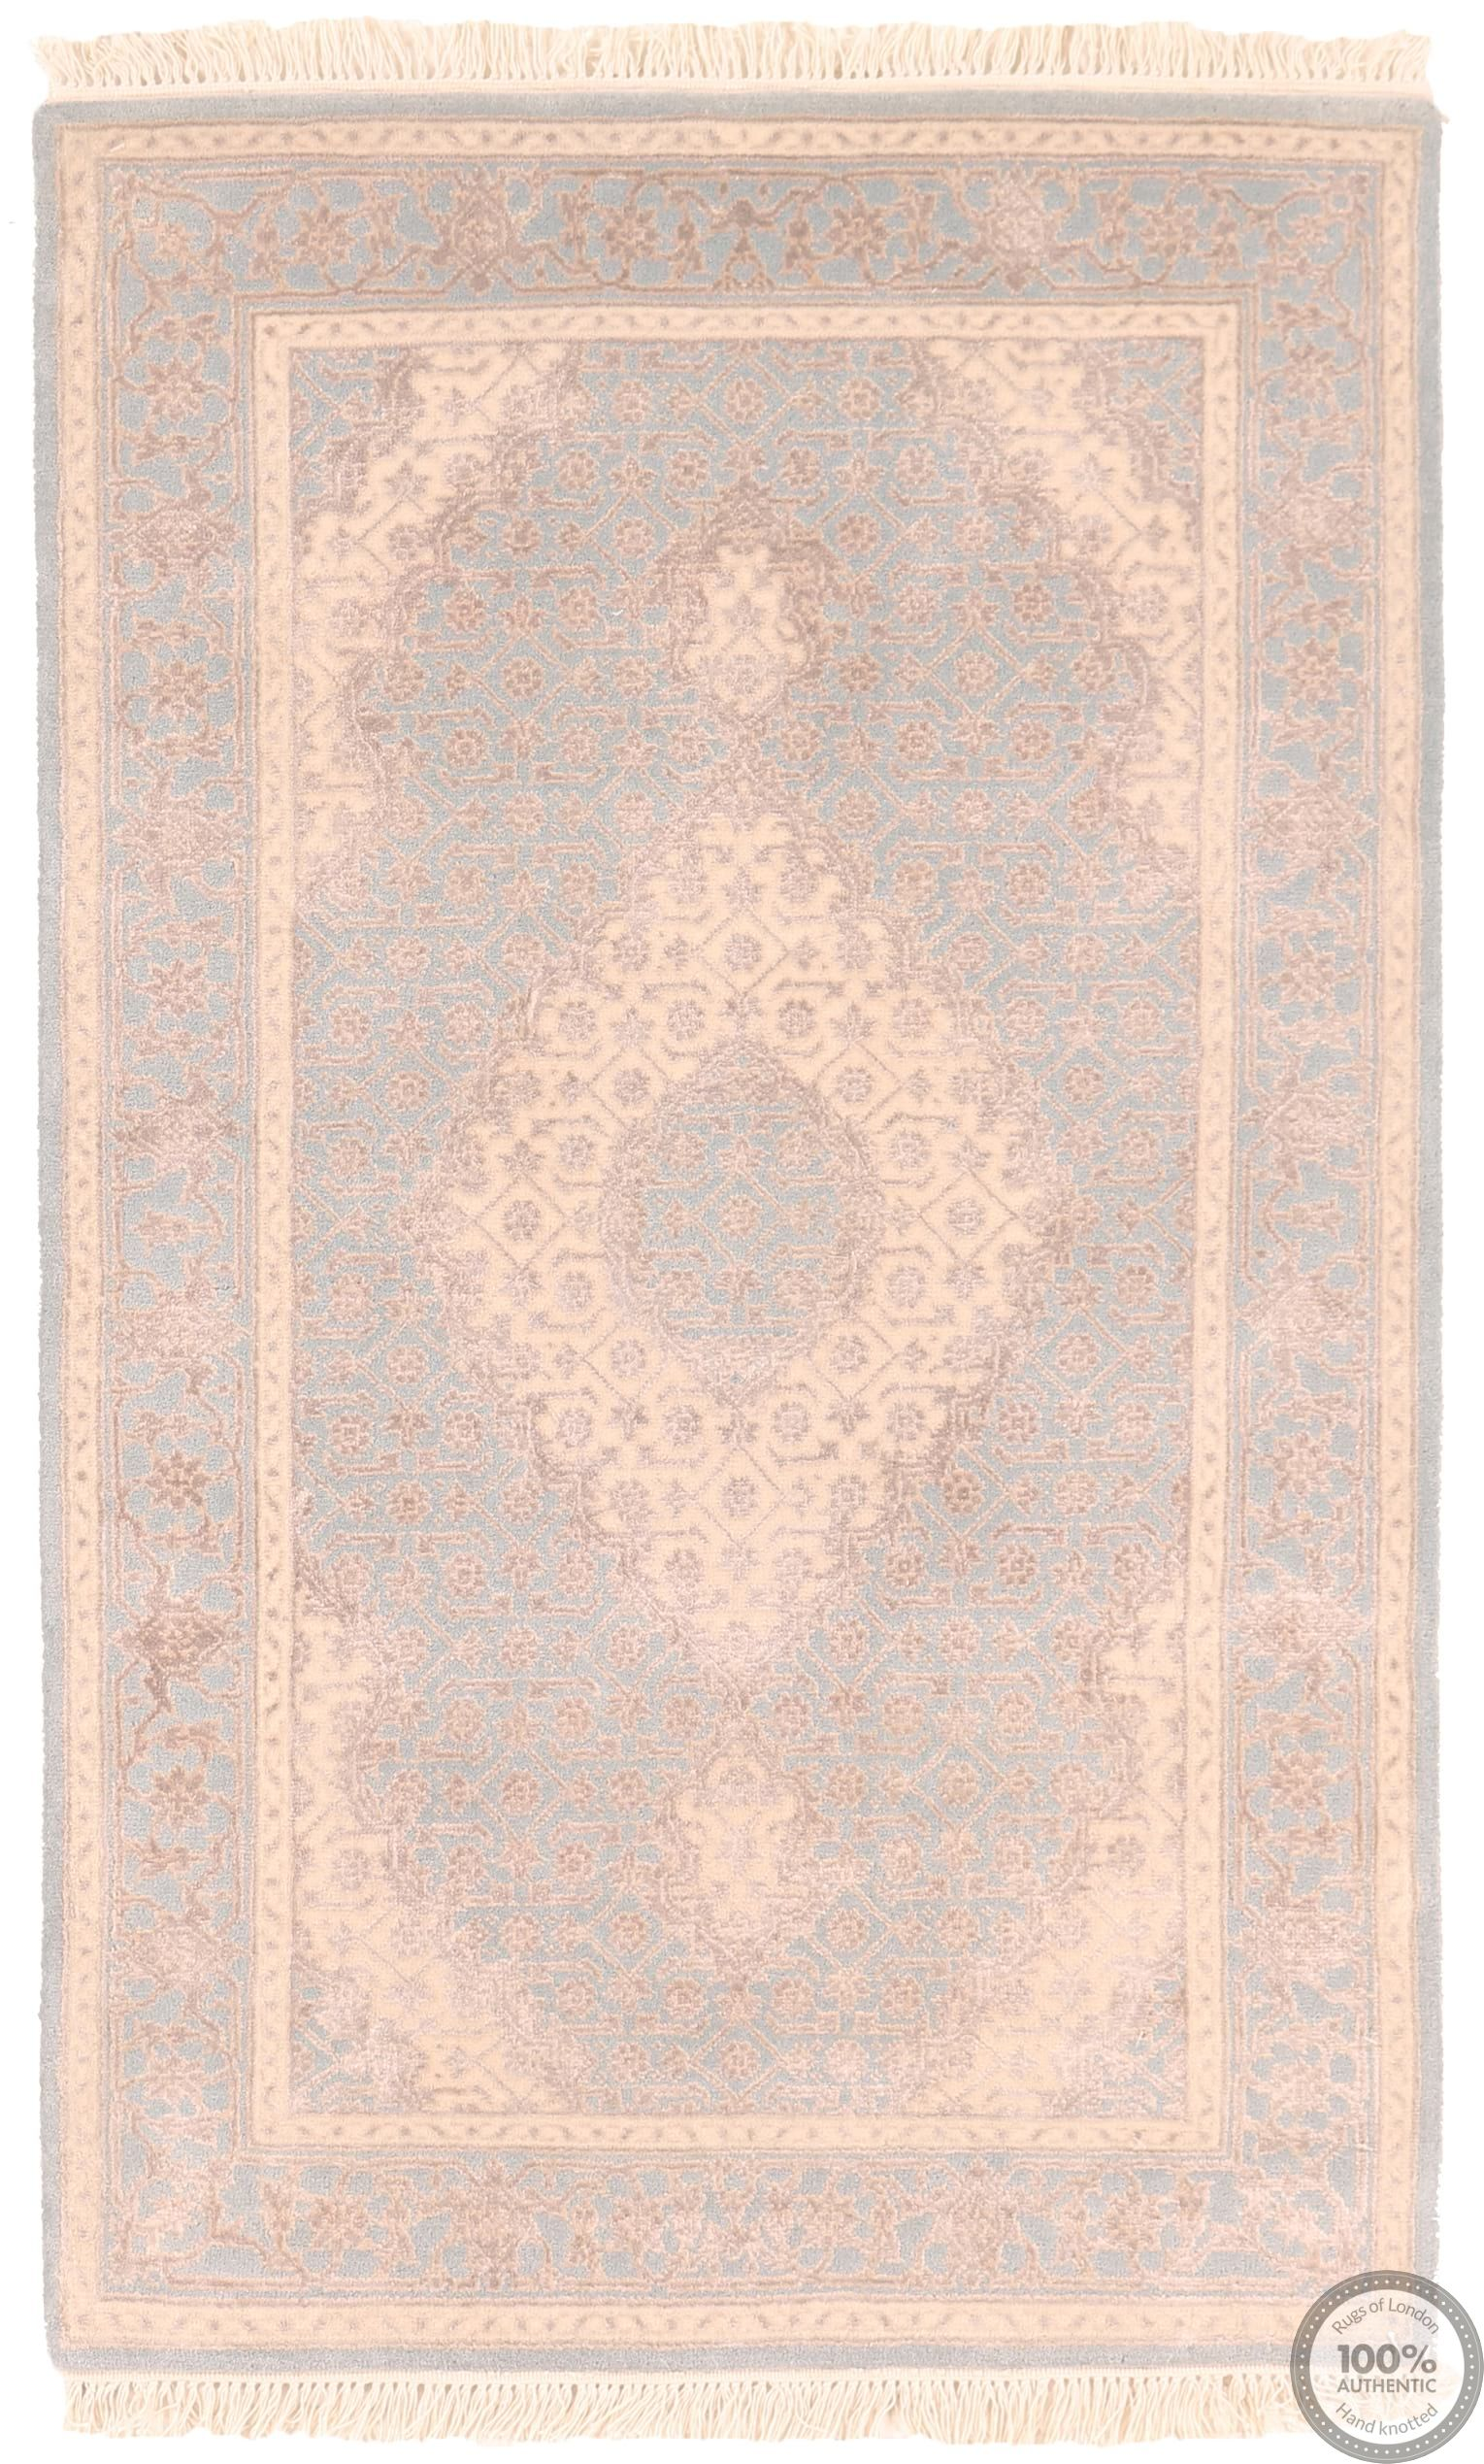 Persian Tabriz design Indian rug